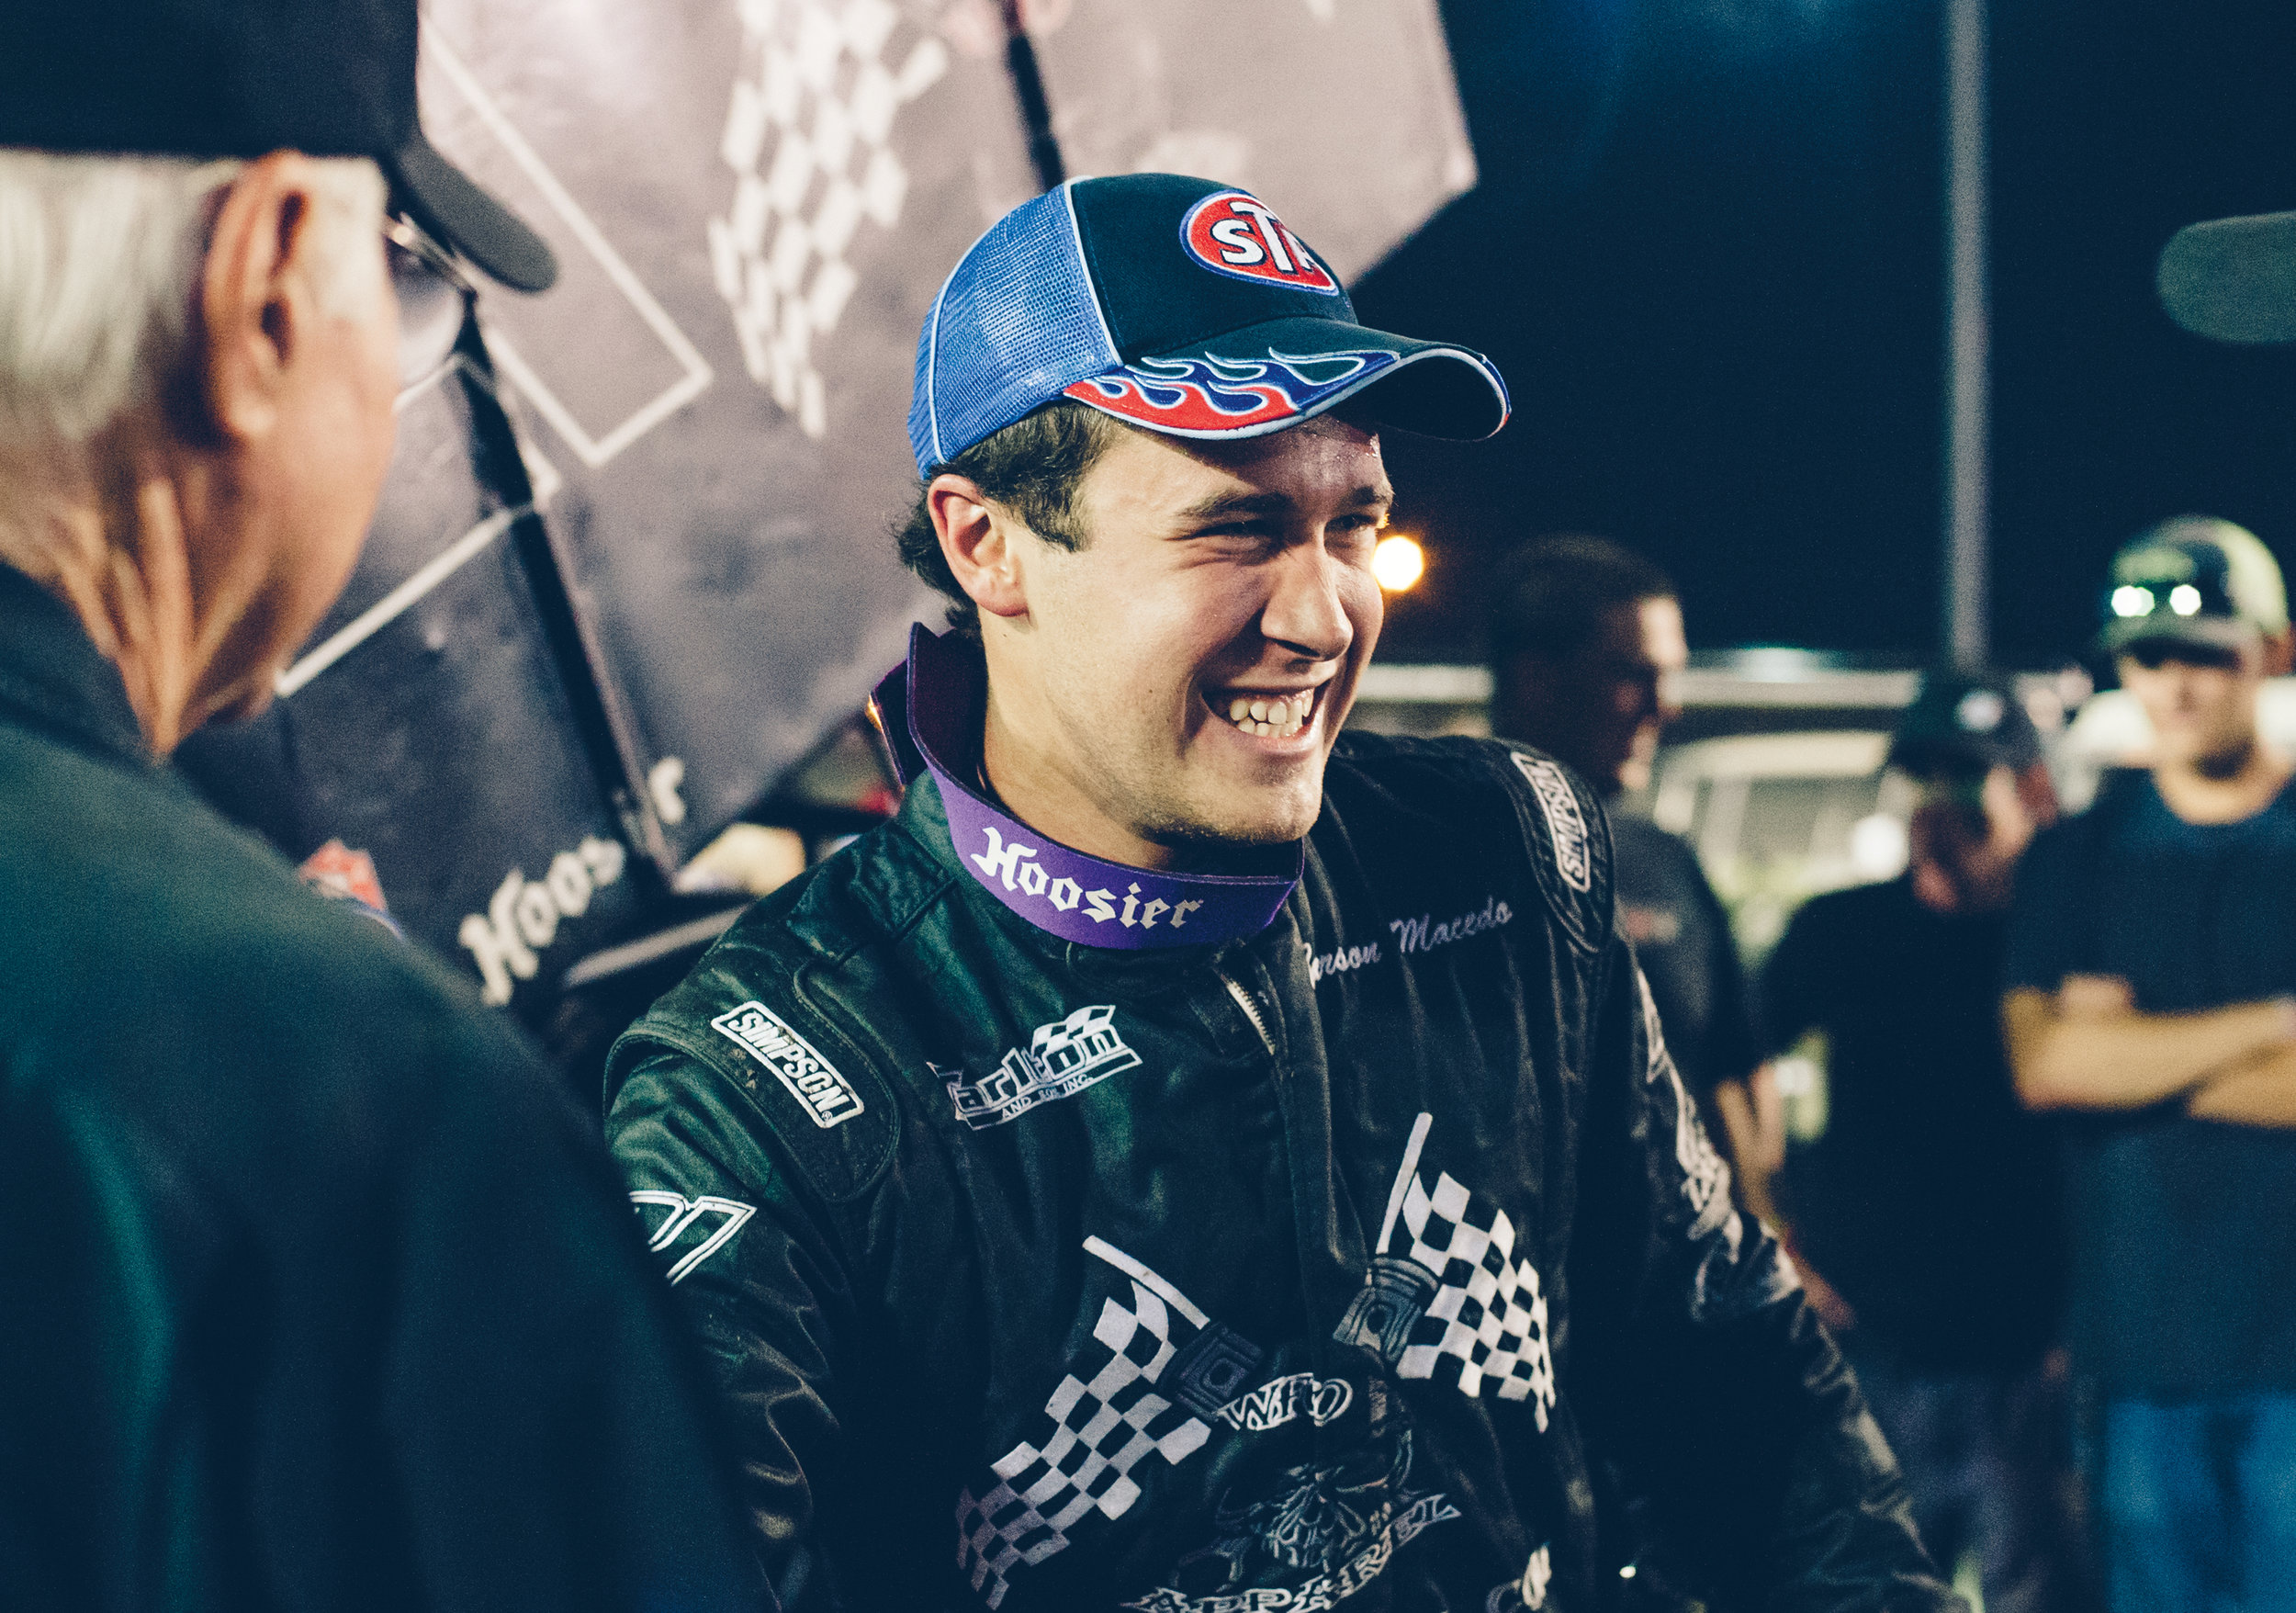 After winning the first night of the 2014 Gold Cup at Chico, 18-year-old Macedo celebrates his first Outlaw series victory.